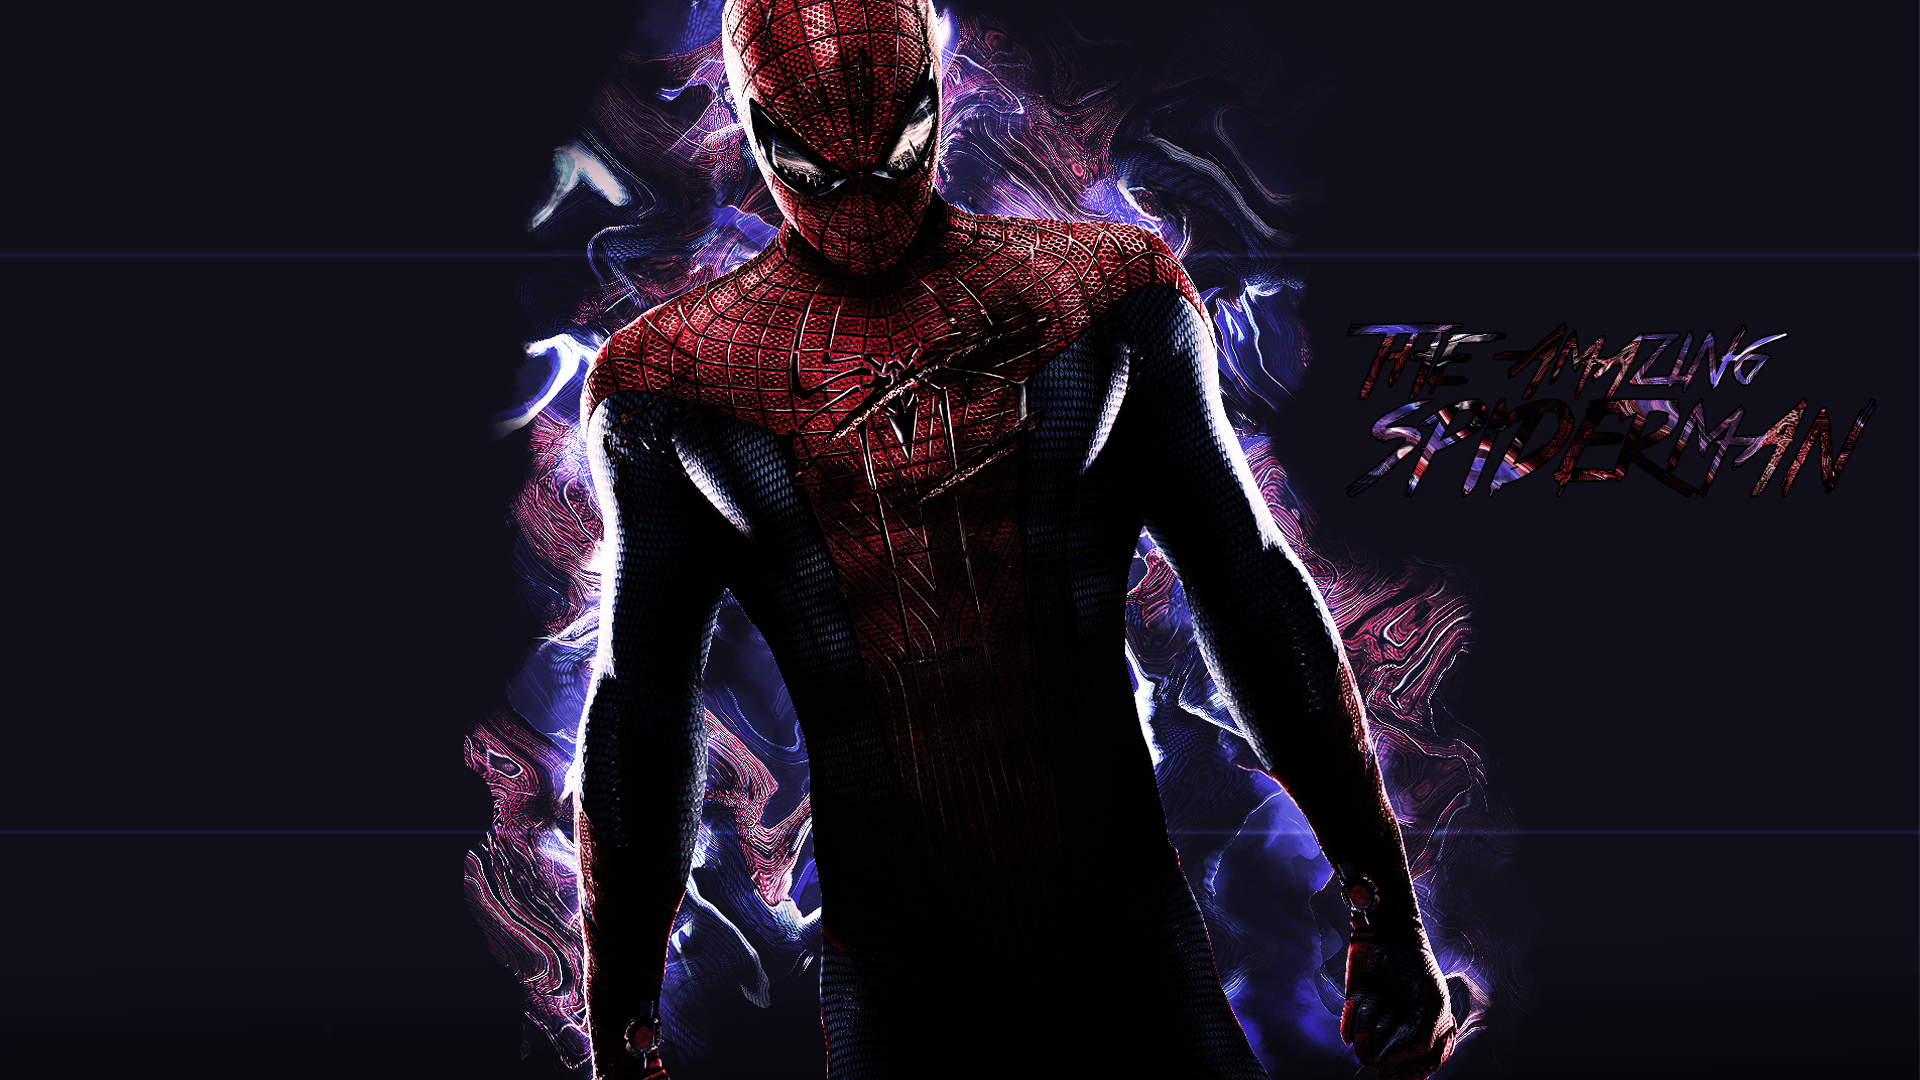 The Amazing Spider Man Wallpaper HD by Tooyp on DeviantArt